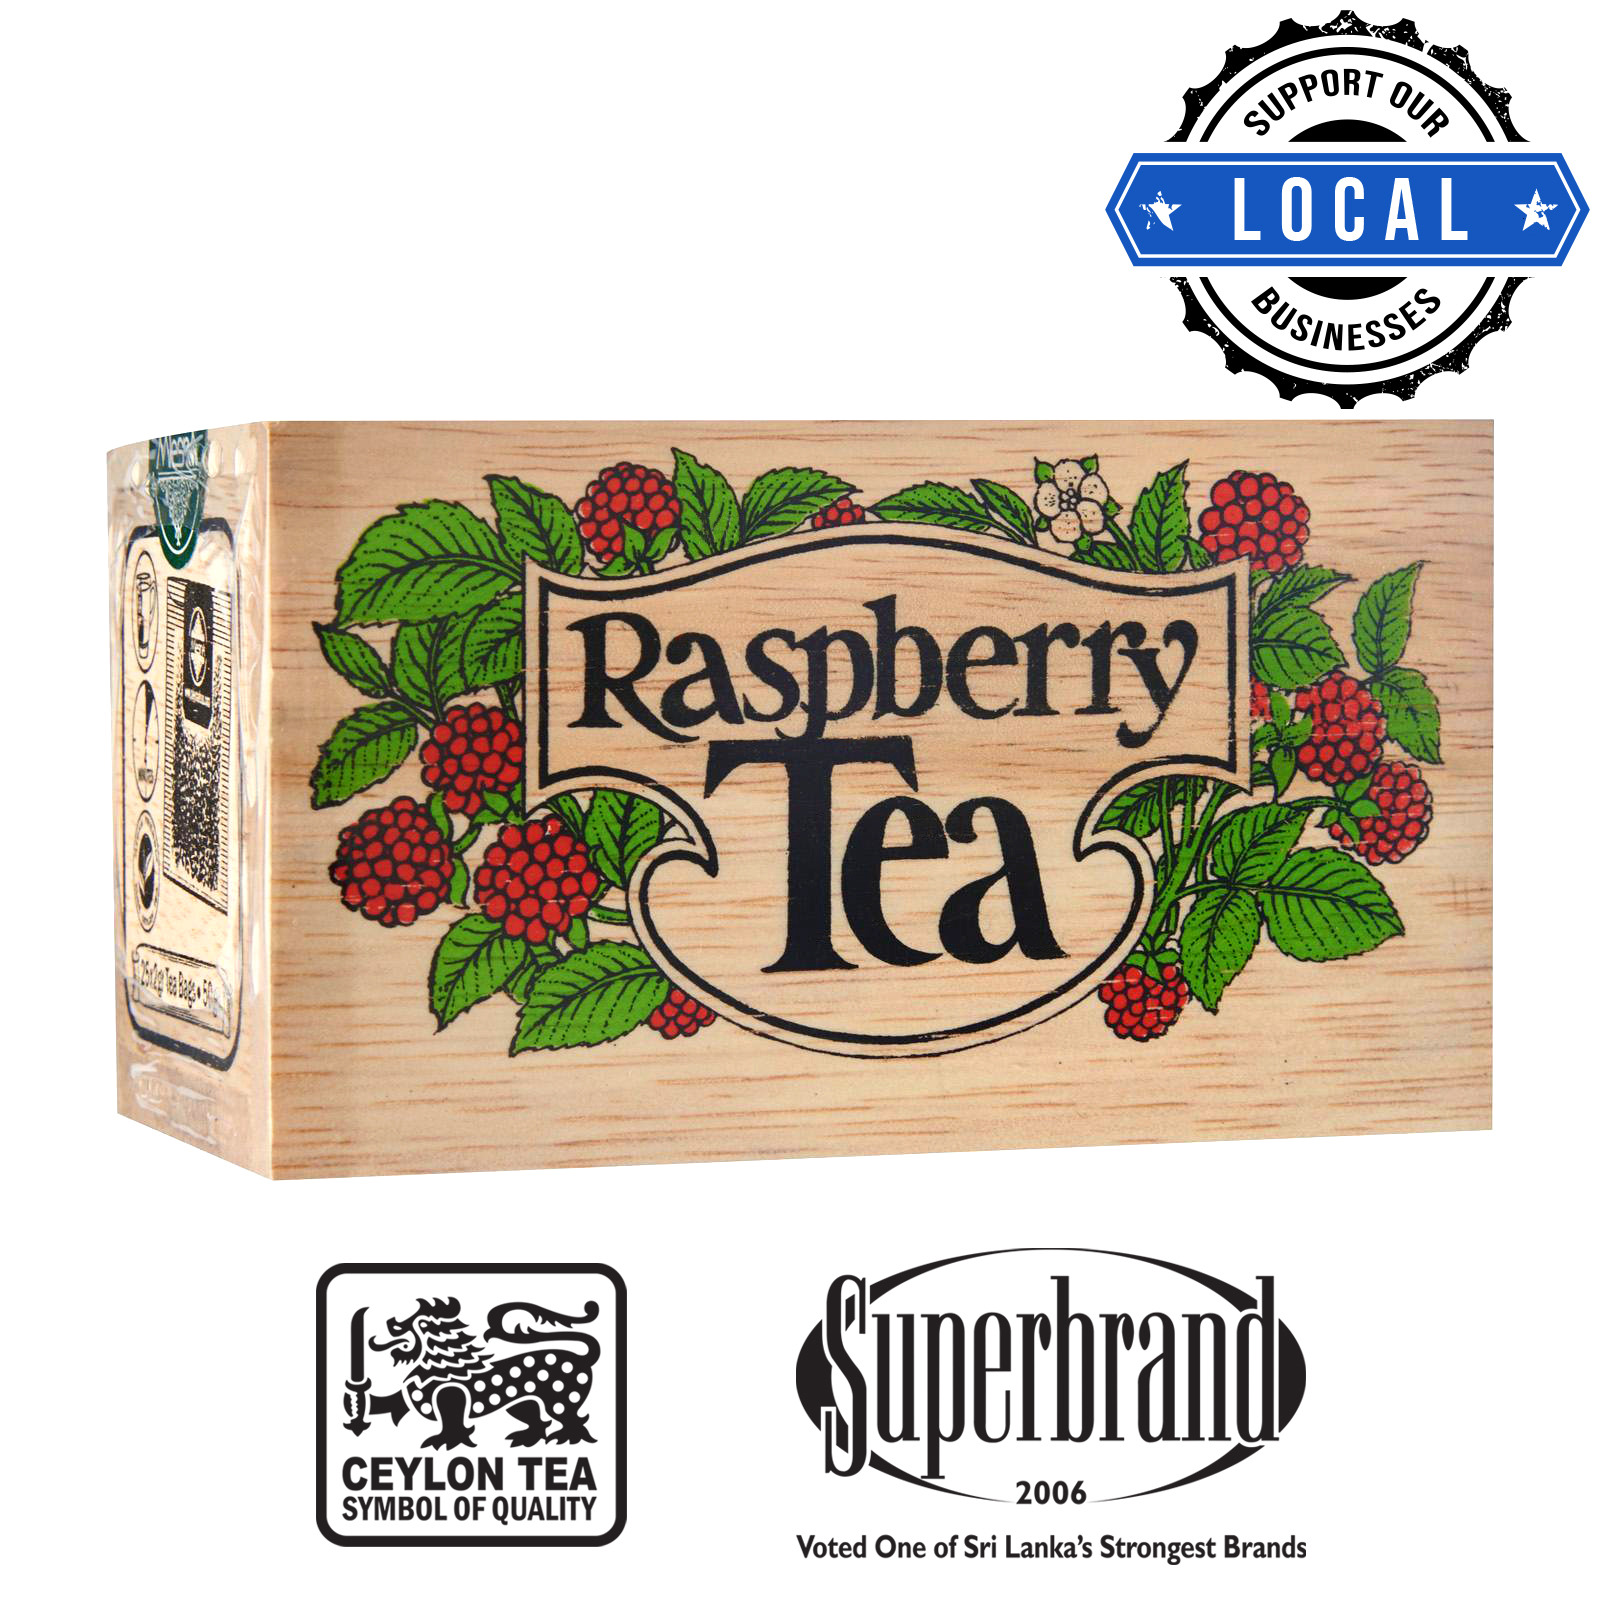 Mlesna Tea Wooden Box - Raspberry